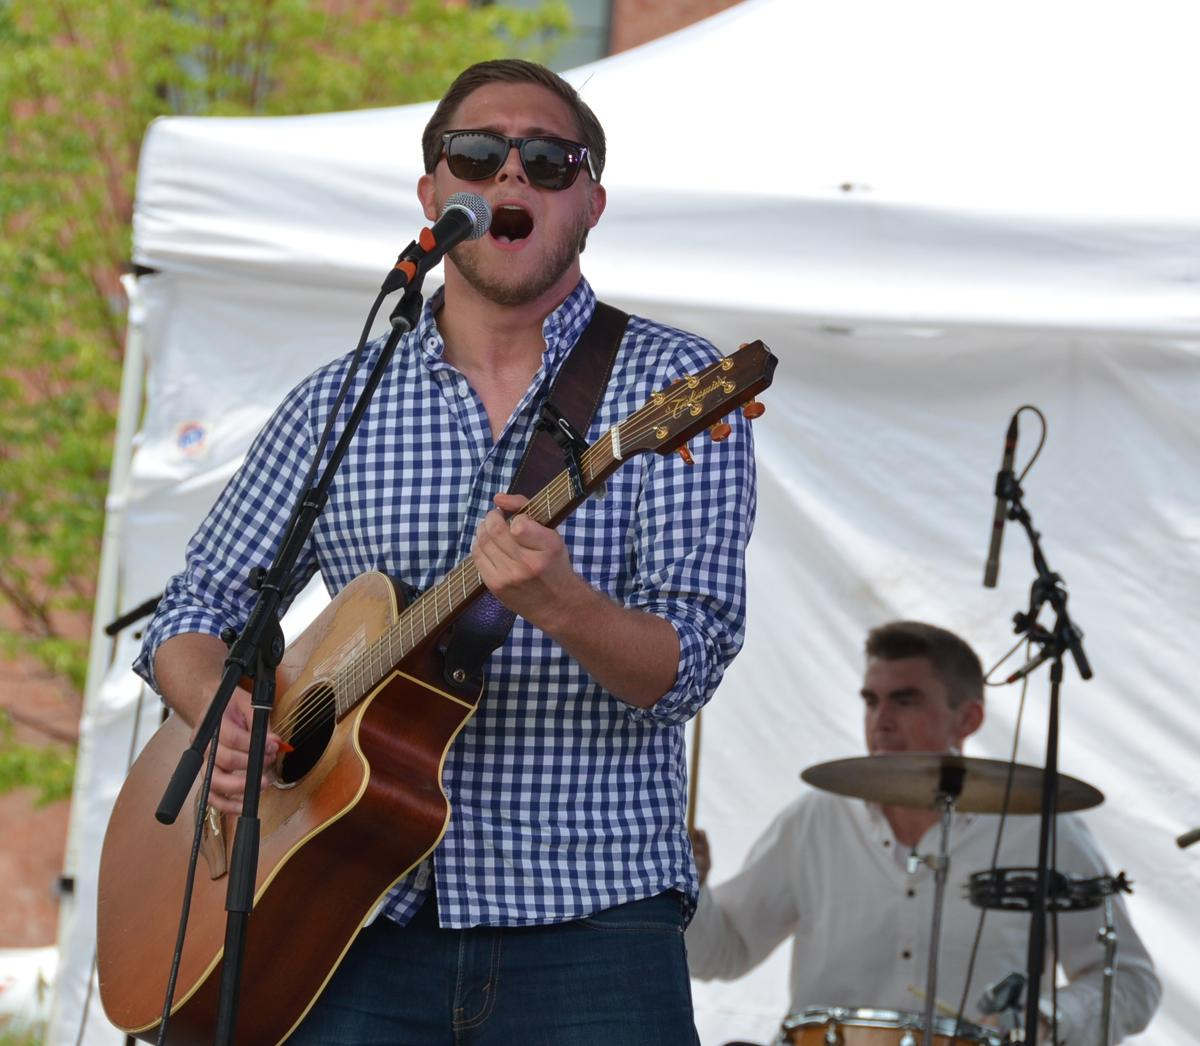 Lead singer of The Ridges performing at The Taste of OTR on Saturday, July 26 at Washington Park (Image: Leah Zipperstein / Cincinnati Refined)